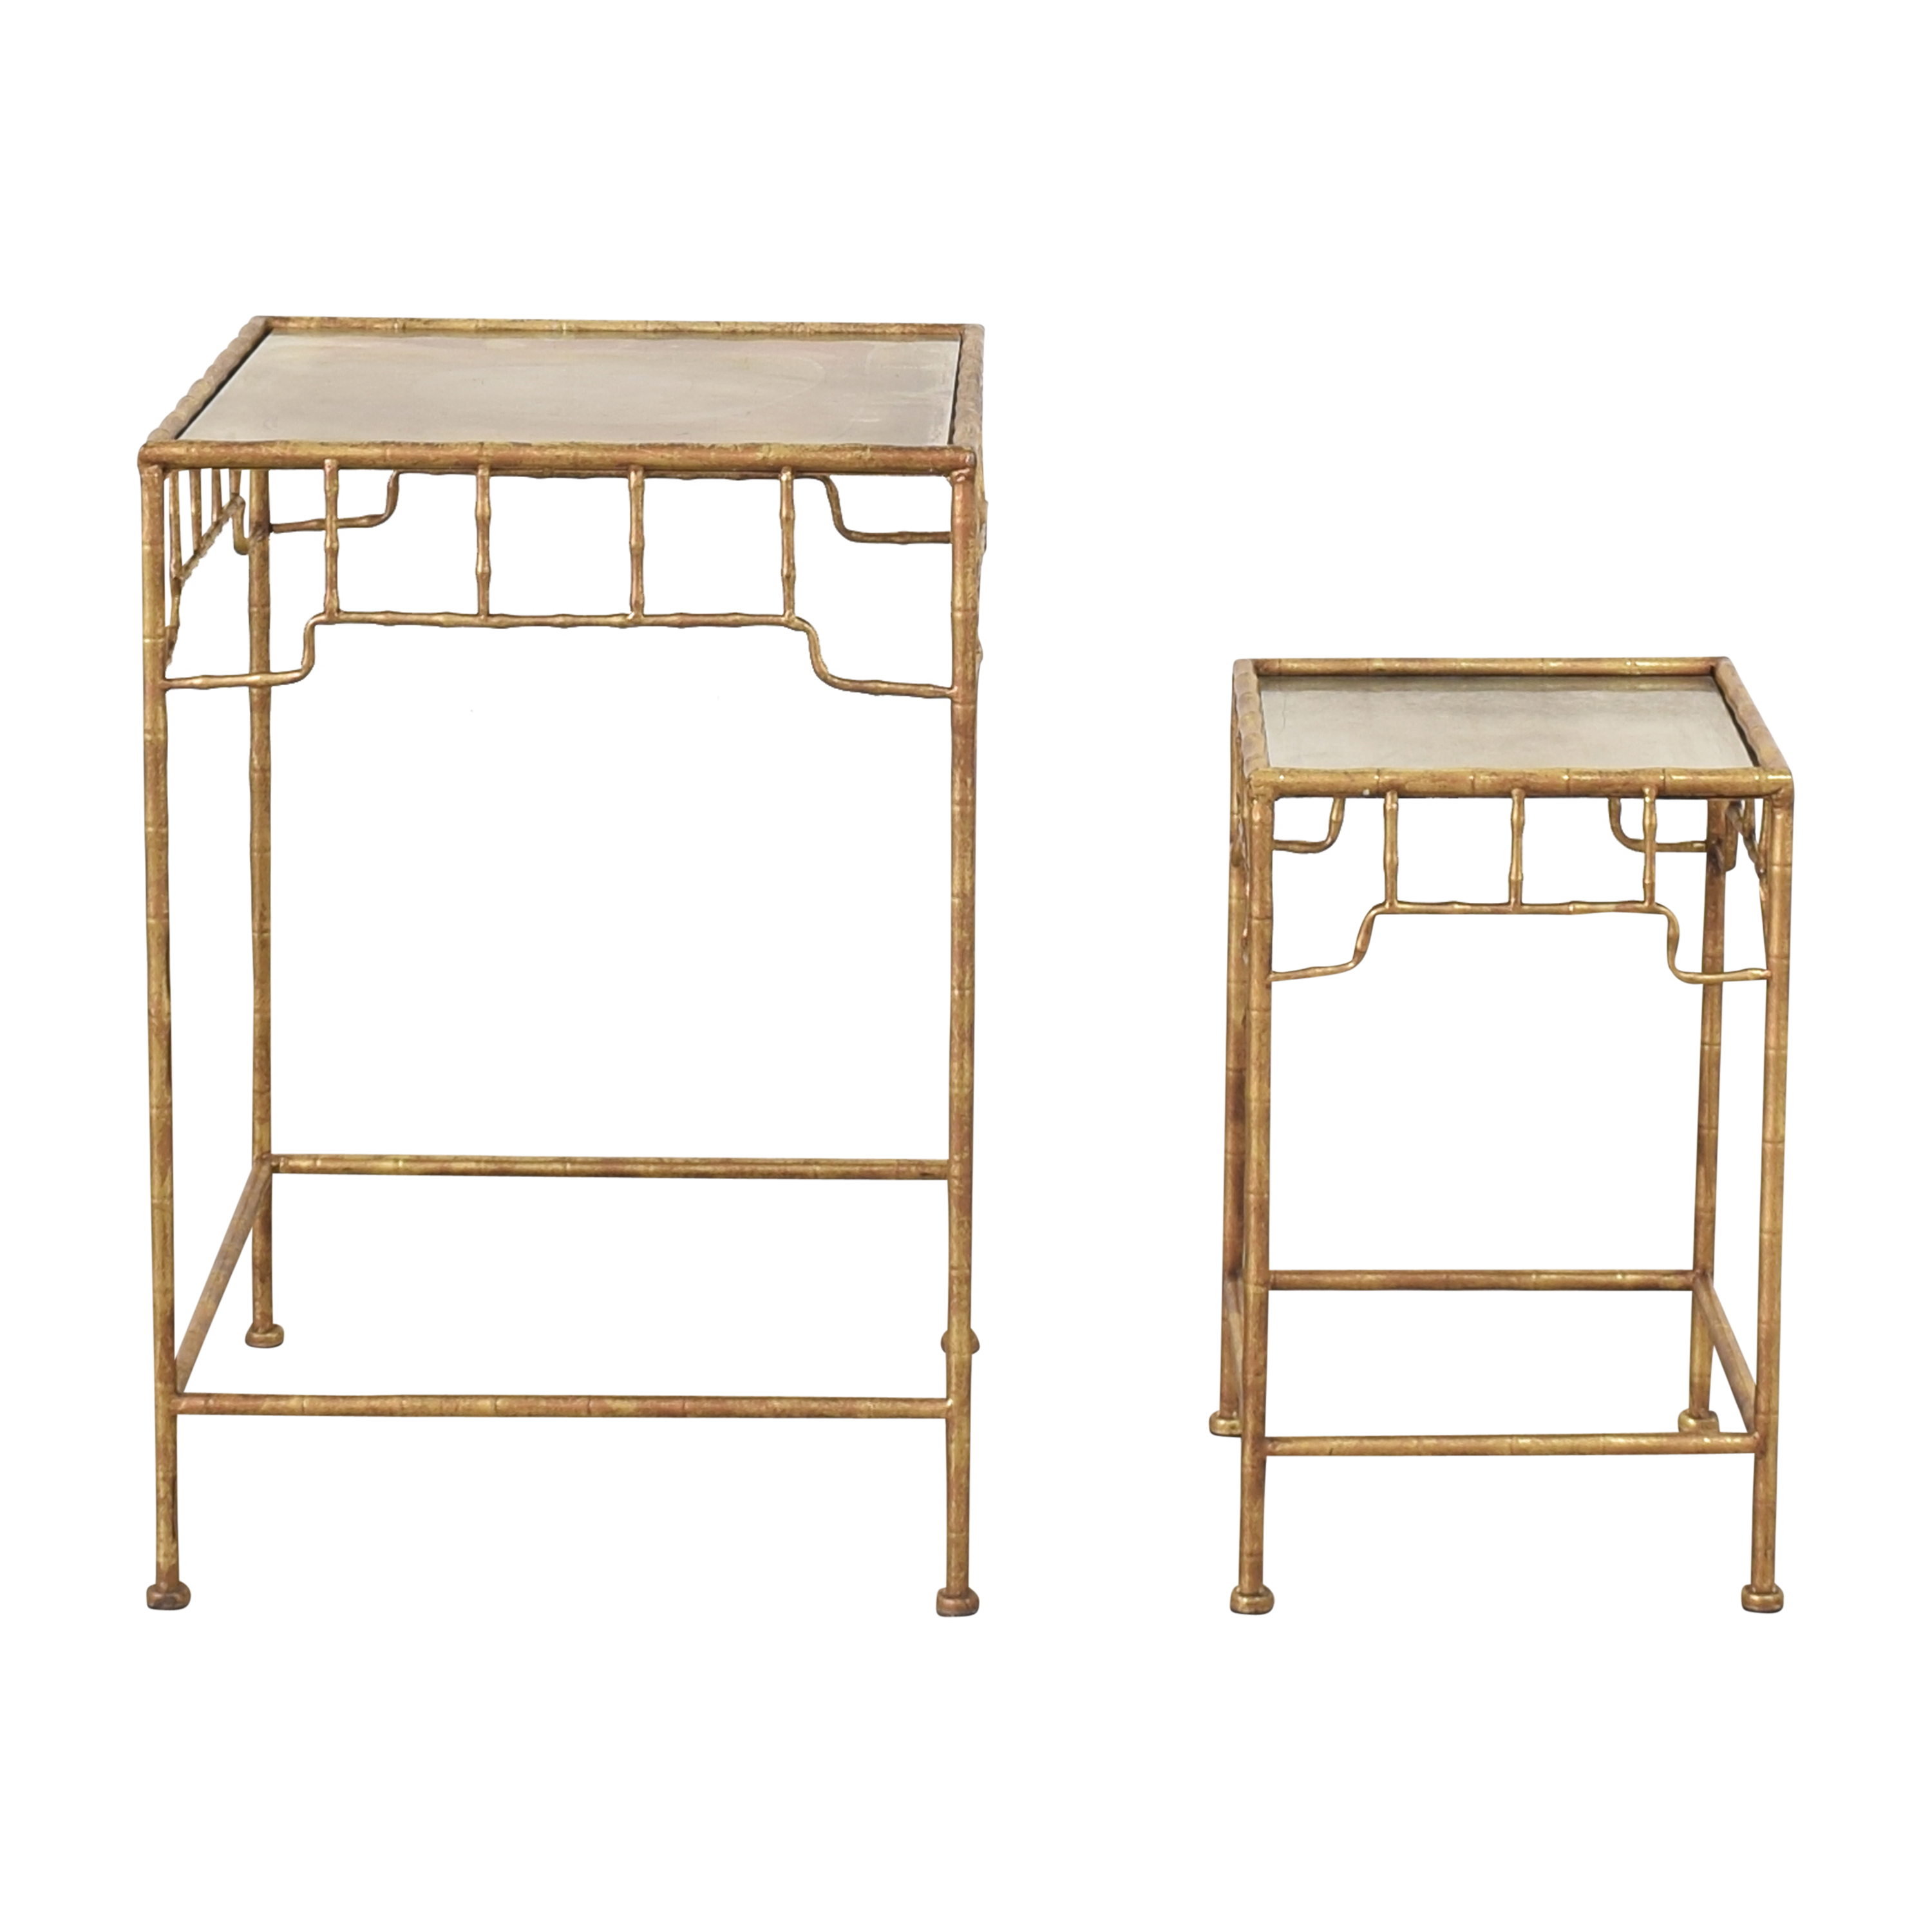 Two's Company Two's Company Bamboo-Style Nesting Tables Tables